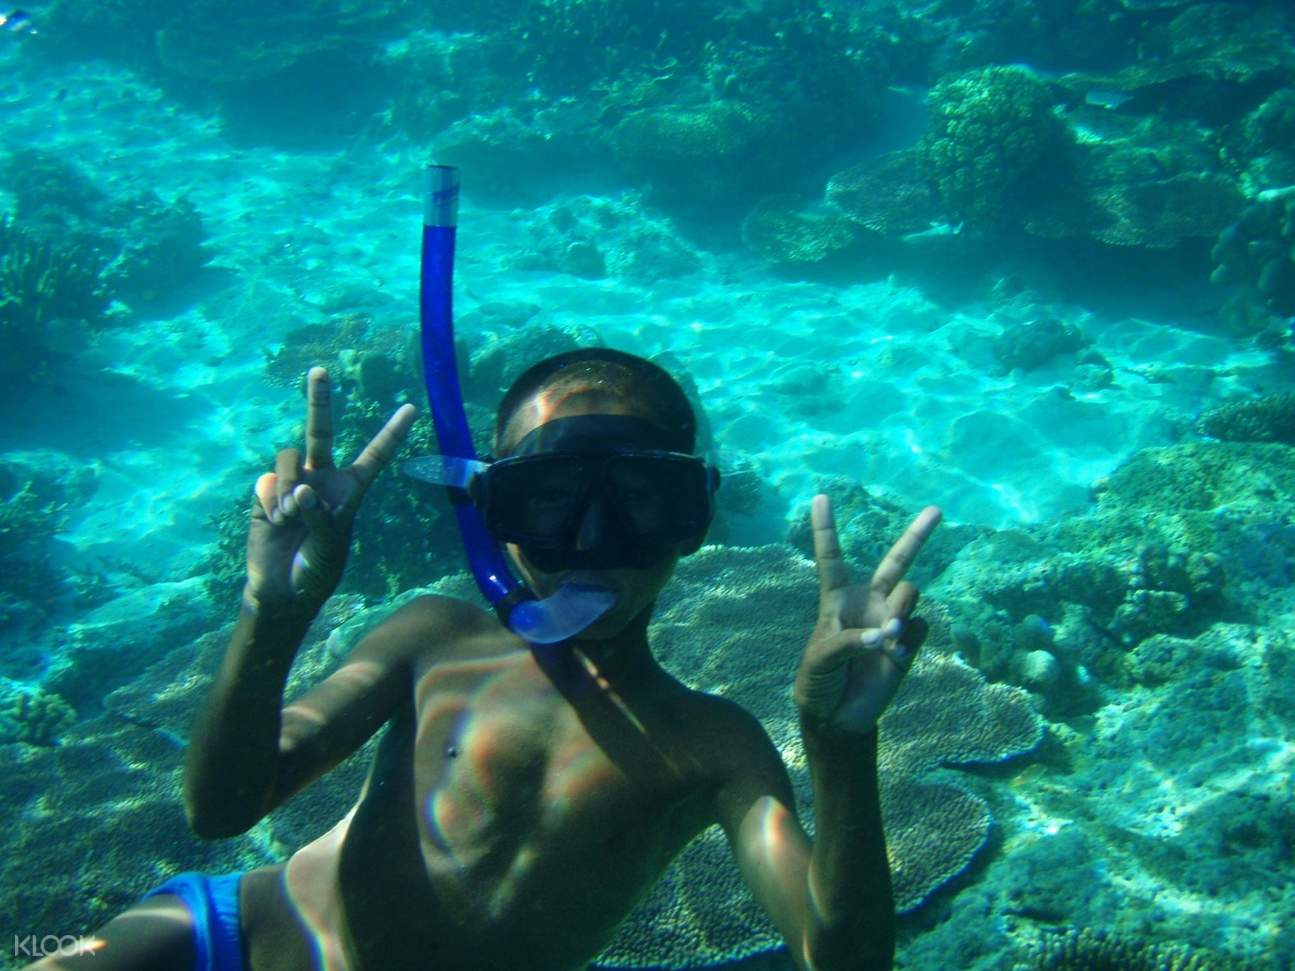 kid poses for an underwater photograph